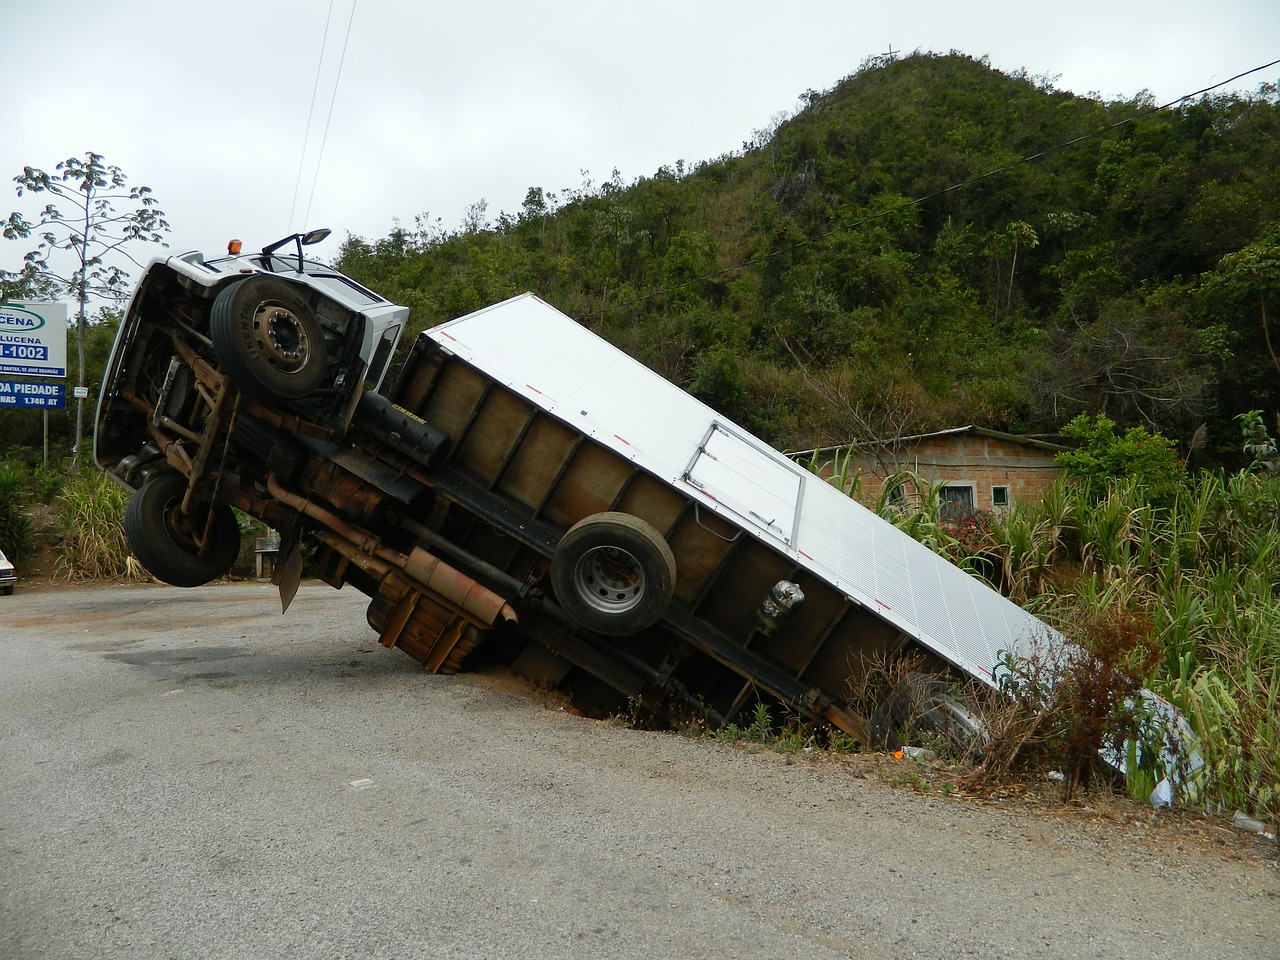 Commercial Truck Accidents & Personal Injury Lawsuits